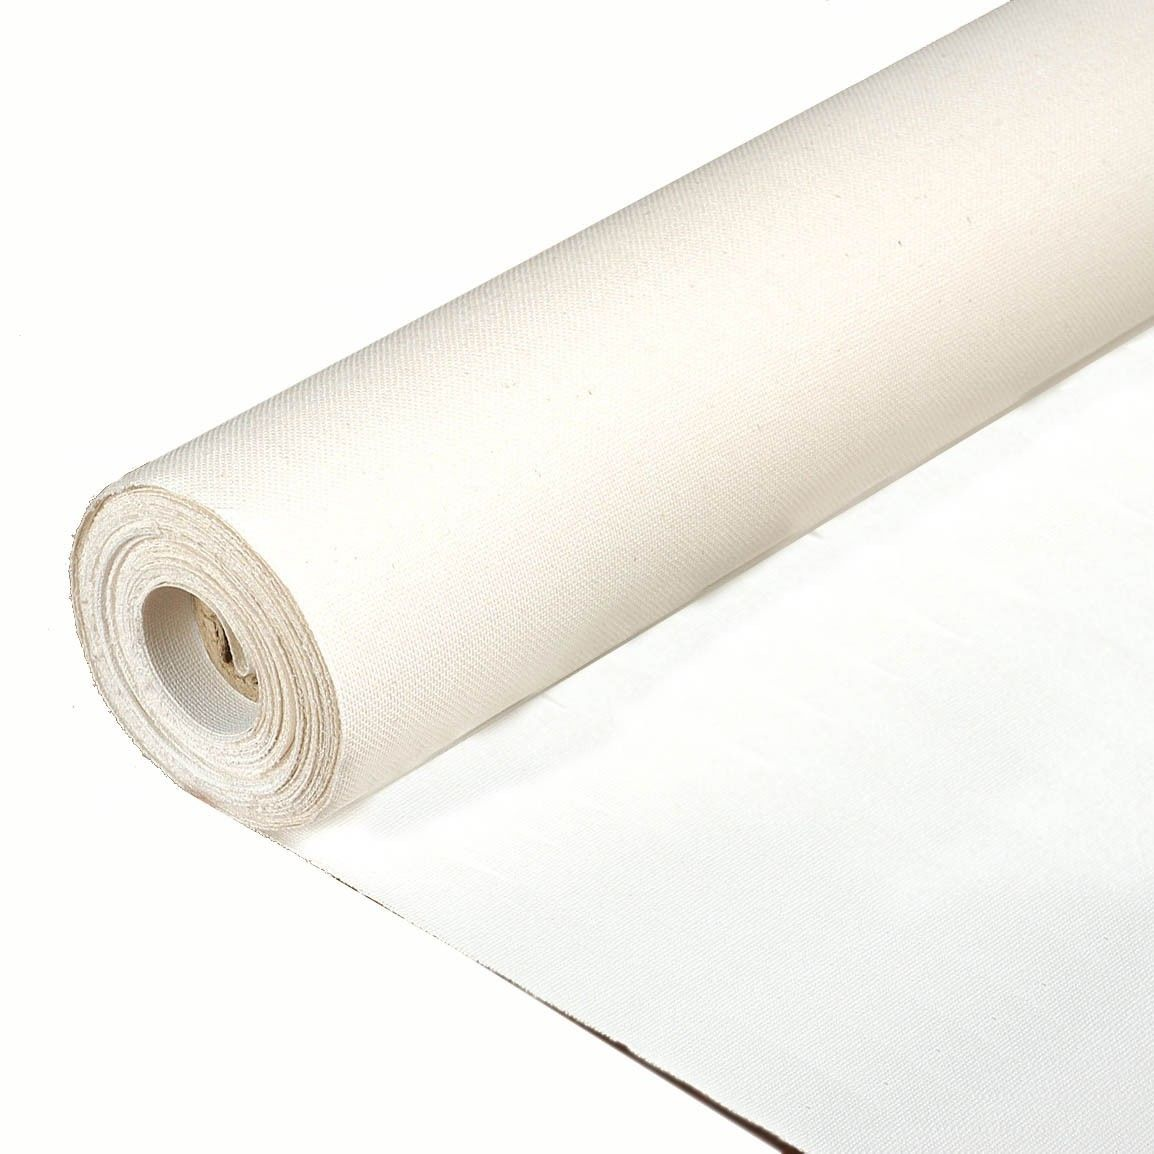 "Rolled Primed Cotton/Poly portrait smooth Canvas, 60"" wide - Sunbelt Mfg. Co."